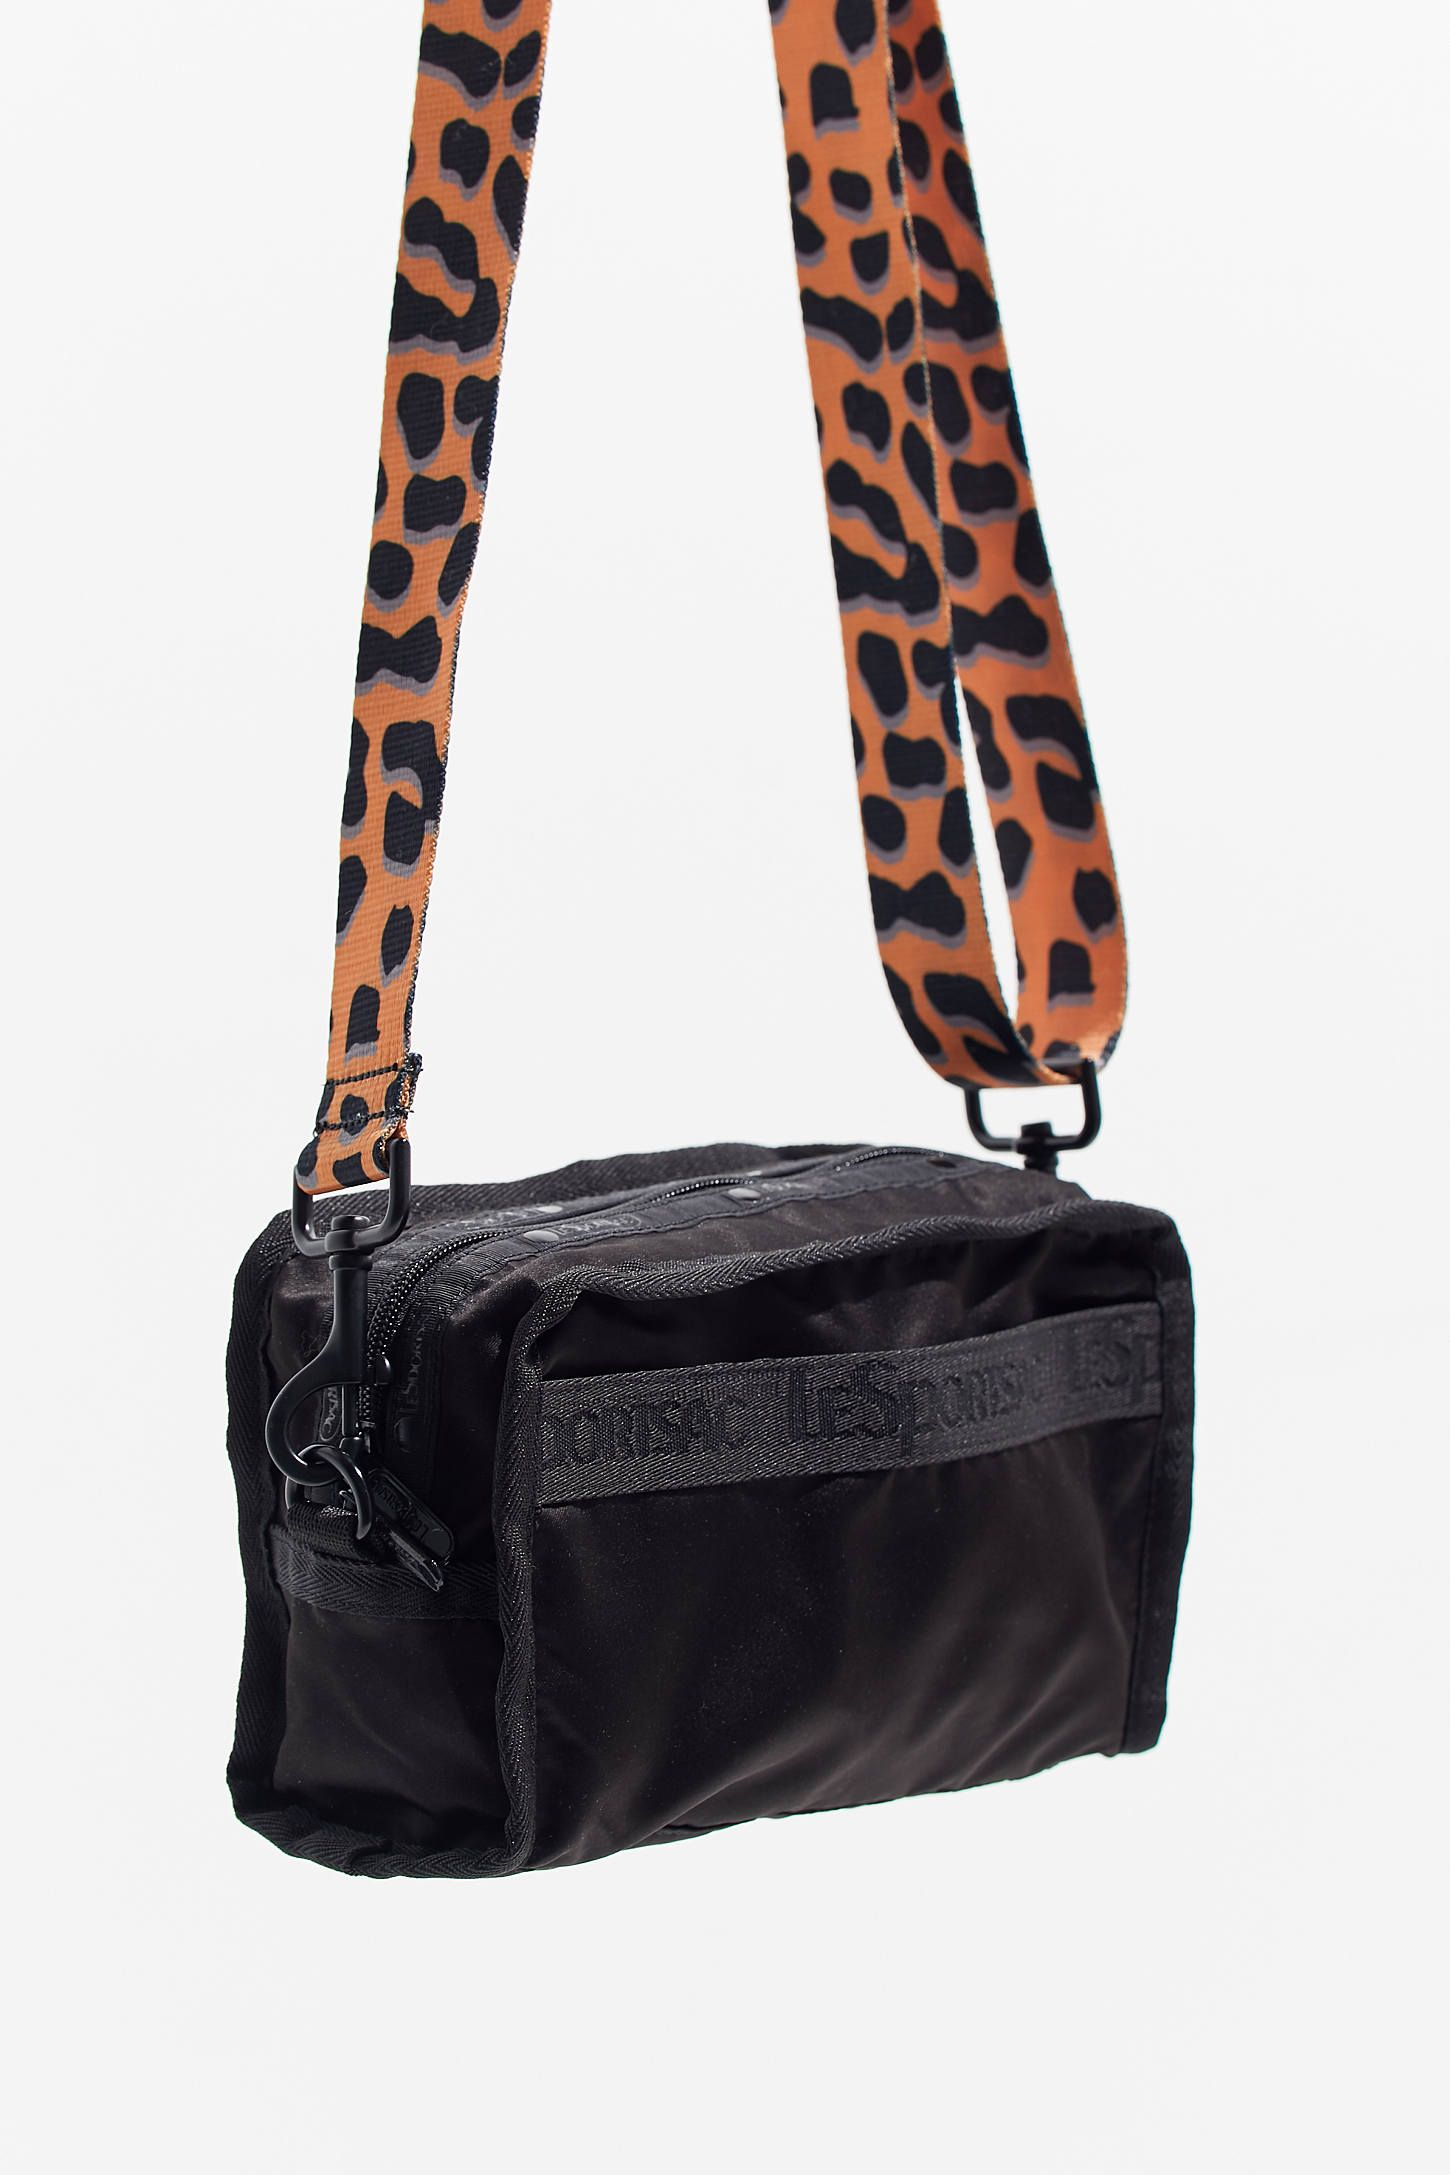 be61fbcdf4c7 LeSportsac Taylor Crossbody Bag | Studio | Bags, Crossbody bag ...